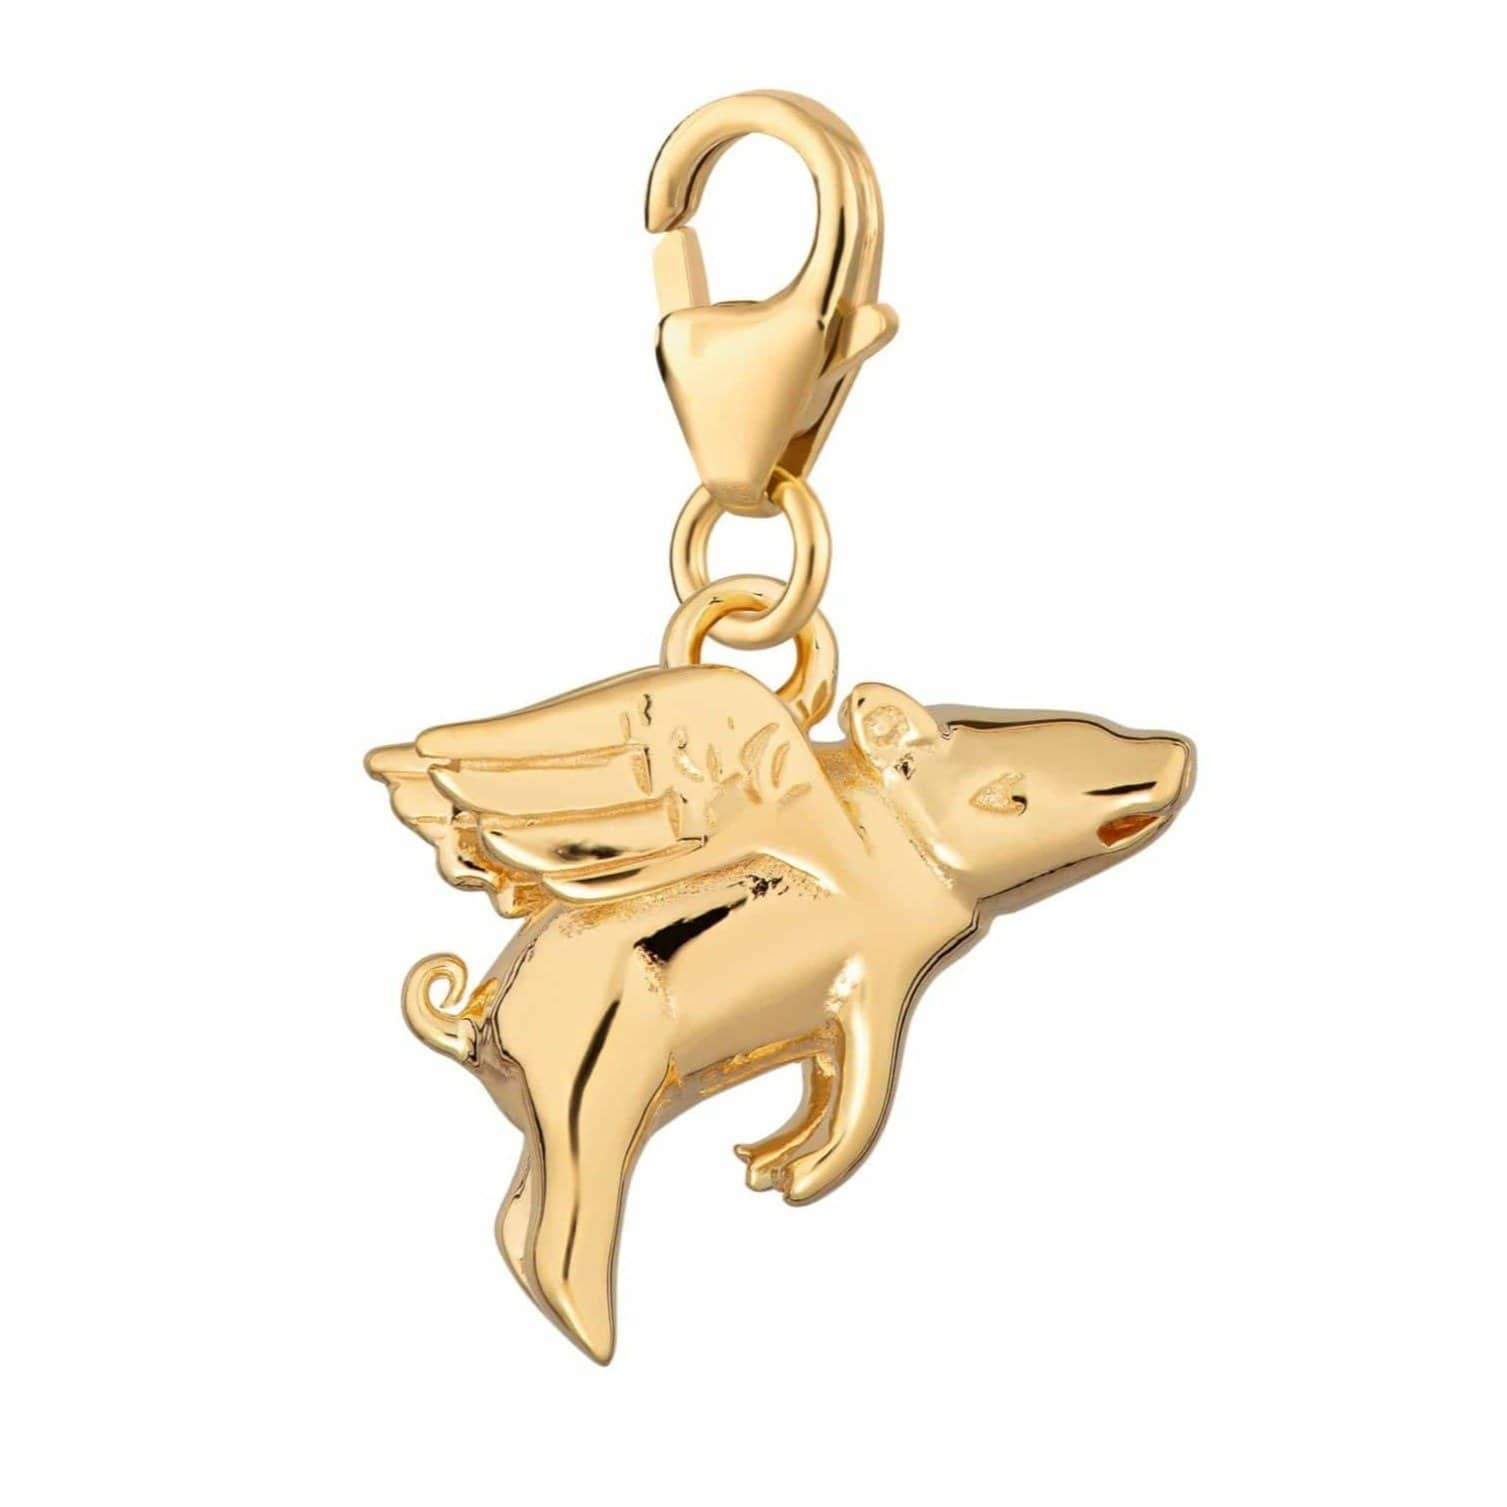 Gold Plated Flying Pig Charm